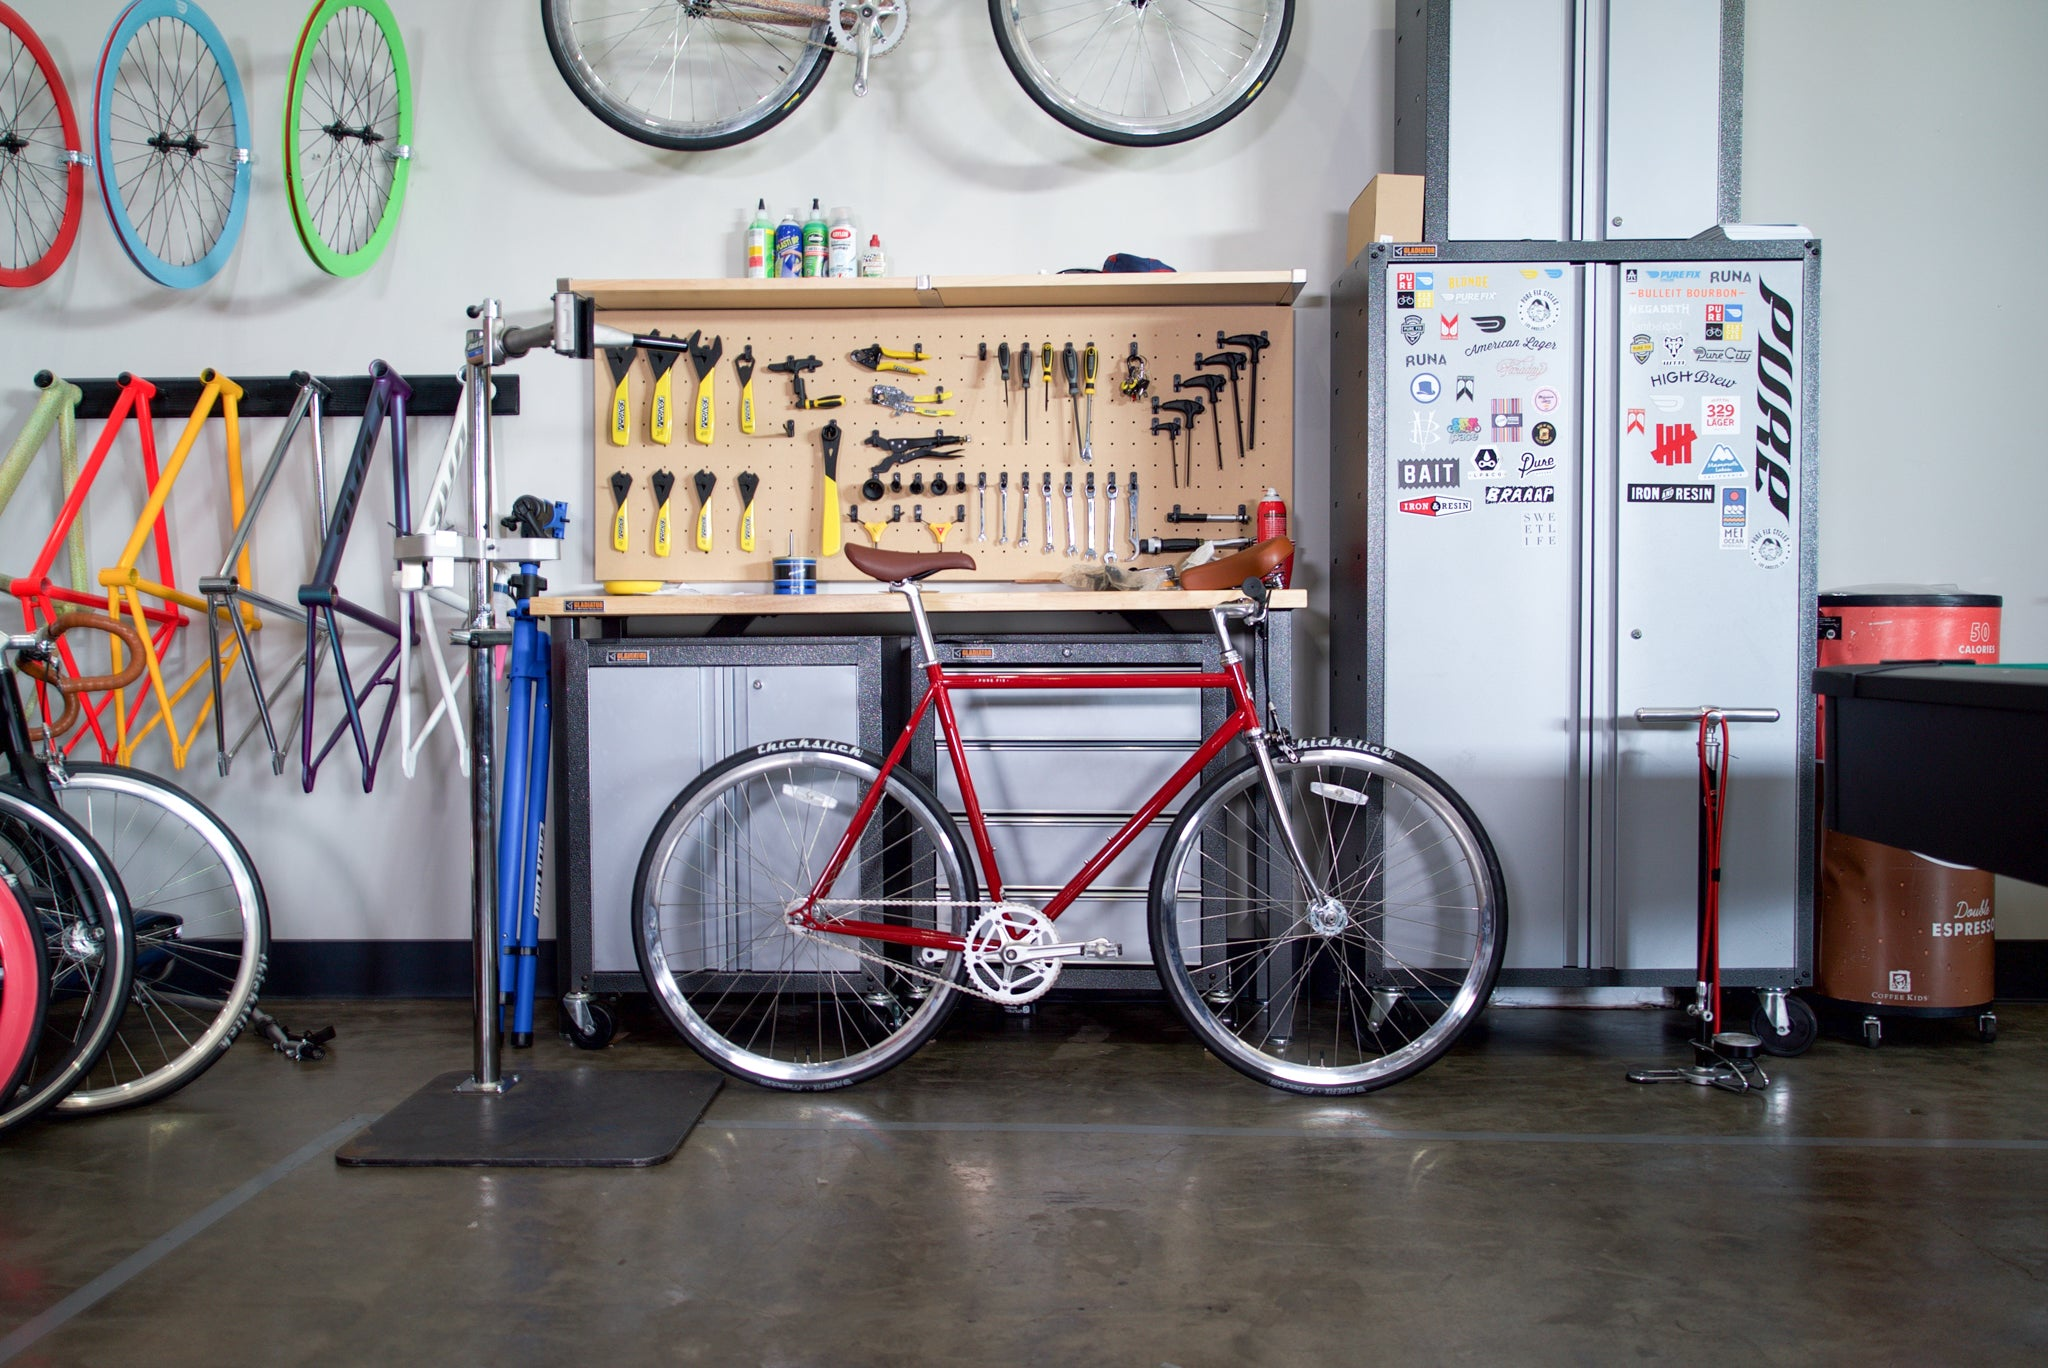 8be423baa9 ... a wrench or your kids want a bike project they can work on too. Fast,  easy, and really really hard to mess up – let's install that hydration  station!